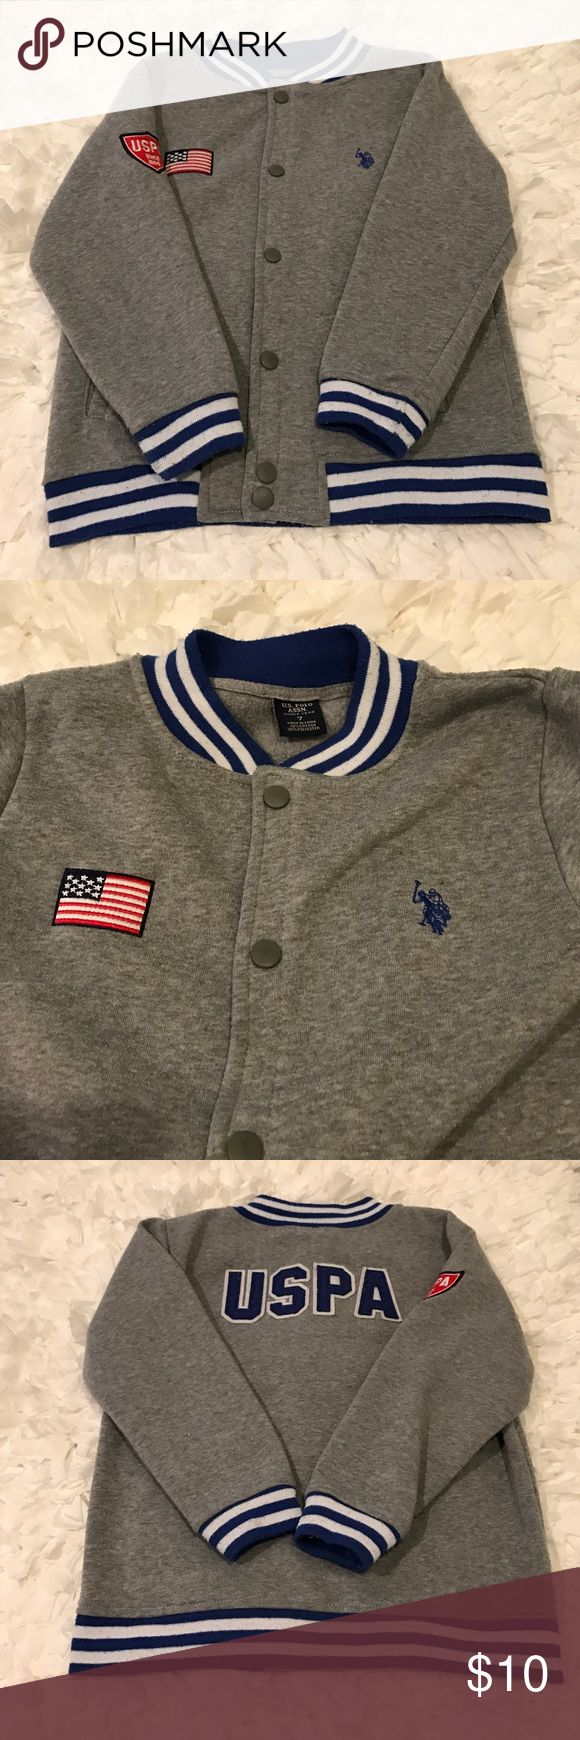 Boy's U.S. Polo Assn. Jacket Adorable Boy's U.S. Polo Assn. light Jacket. Size:7. Gently used there is some pilling on Jacket from washing. No stains, rips, tears etc. & price reflects. Color is heather gray with blue & white stripe hem, cuffs & collar. Snap button front closure. 2 front pockets. Blue logo on chest & American flag on chest. 1 sleeve has logo on it & back of Jacket says in blue & white USPA. Inside lined in gray. Very soft! 70% cotton. 30% polyester. Machine wash. Tumble dry…